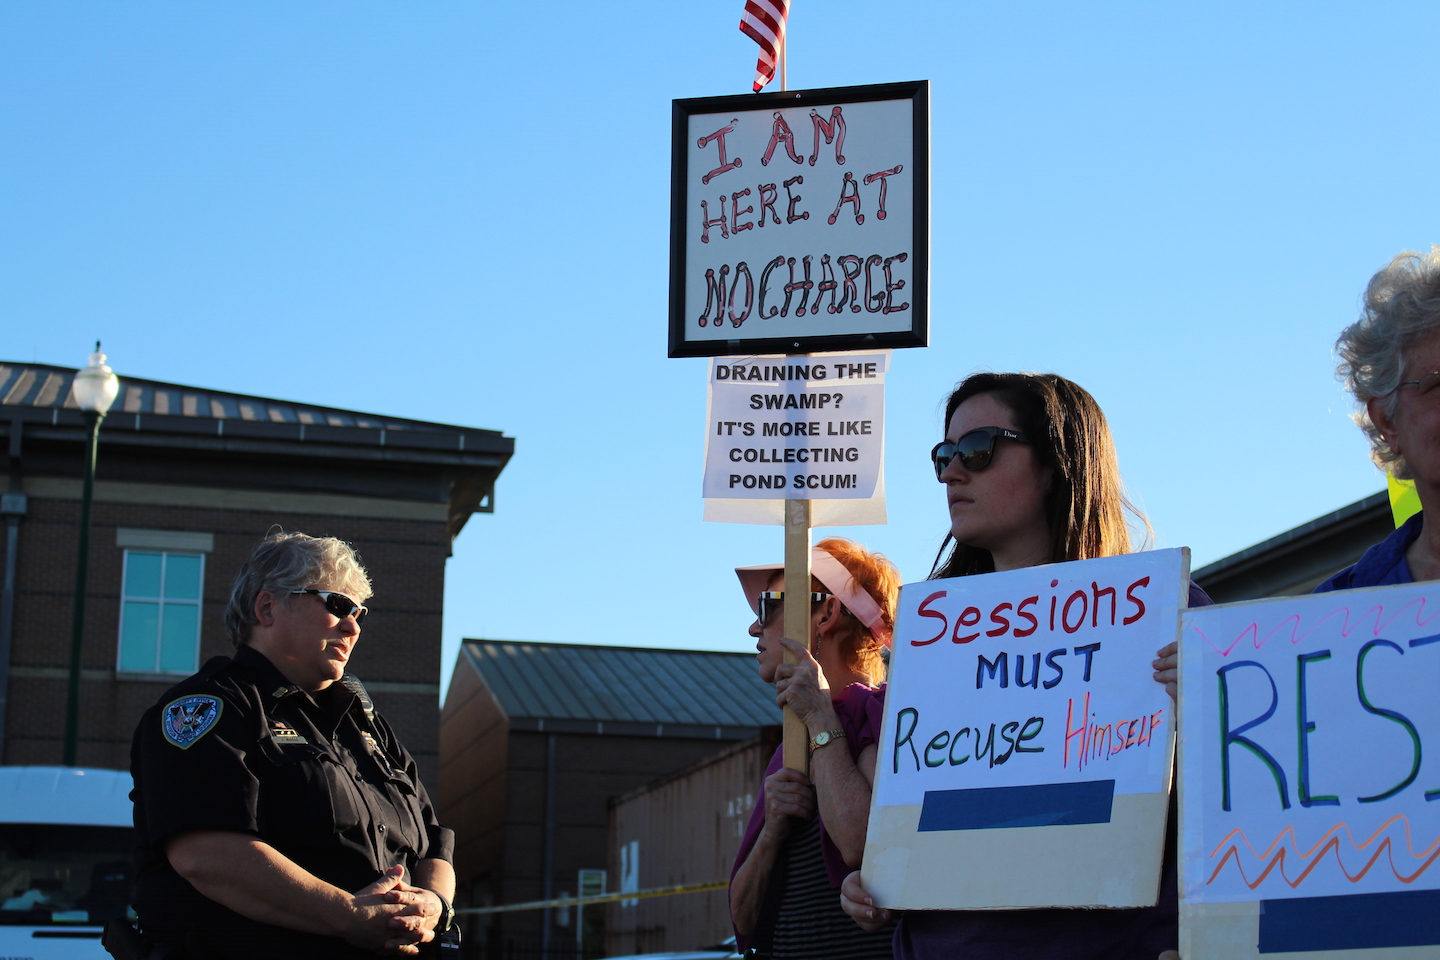 Officer+J.+Morse+and+Joyce+Thomas+talk+while+waiting+for+Sen.+Bill+Cassidy+to+leave+the+town+hall+meeting.+Several+dozen+people+gathered+around+Jefferson+Parish+Library+to+give+their+testimonials+in+protest+to+Sen.+Bill+Cassidy%27s+town+hall+on+Feb.+23%2C+2017.+